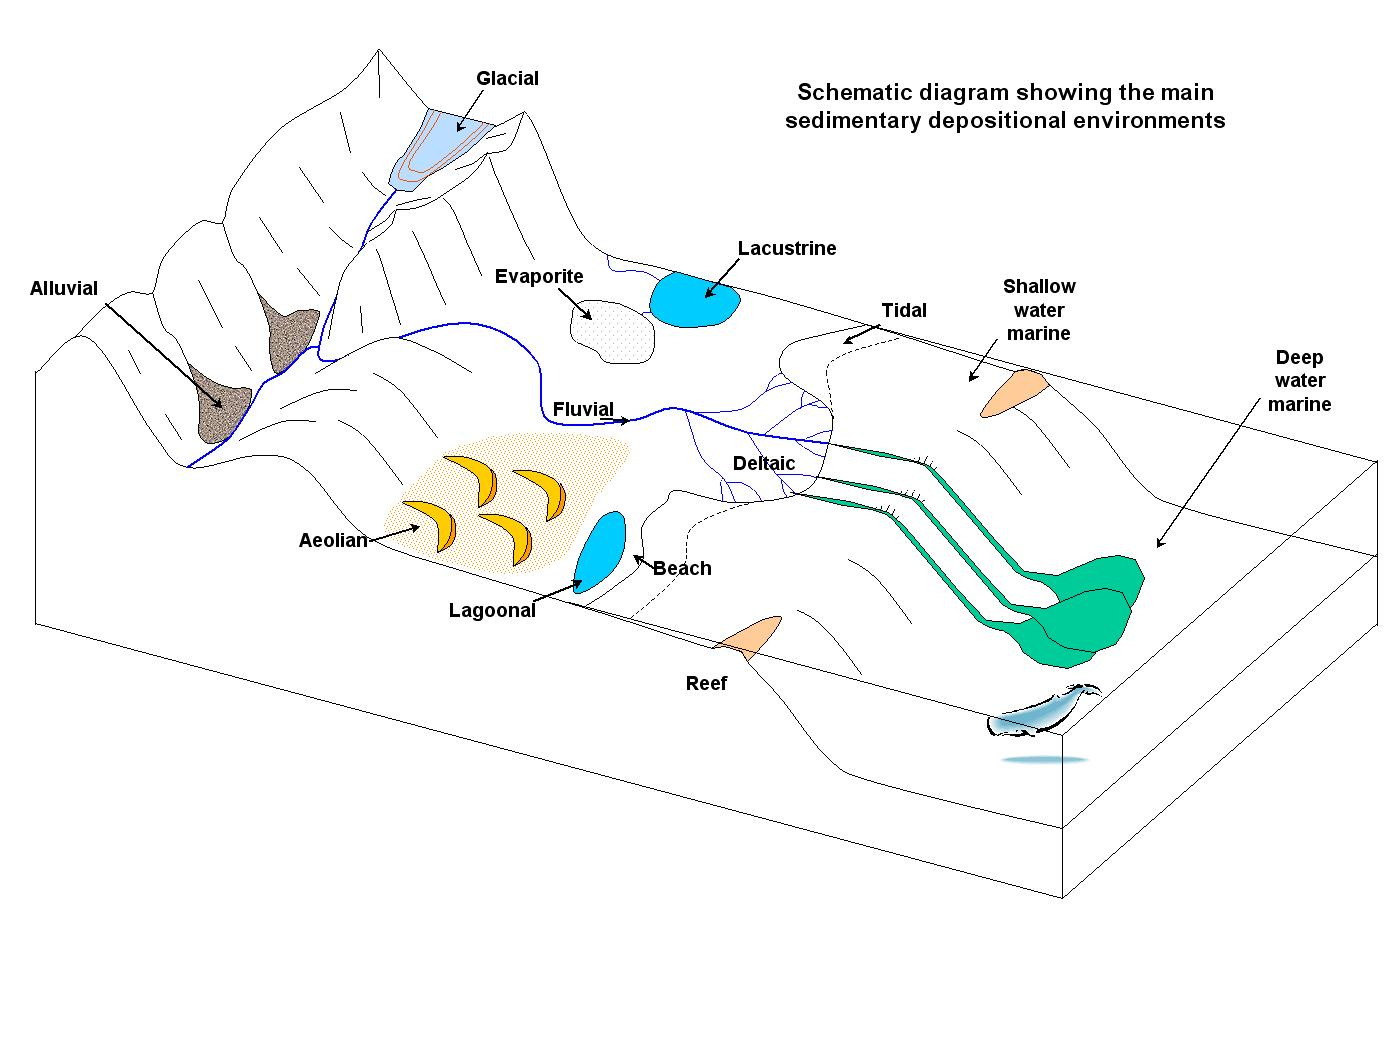 Many different environments are representative environments from high elevation to deep under water.